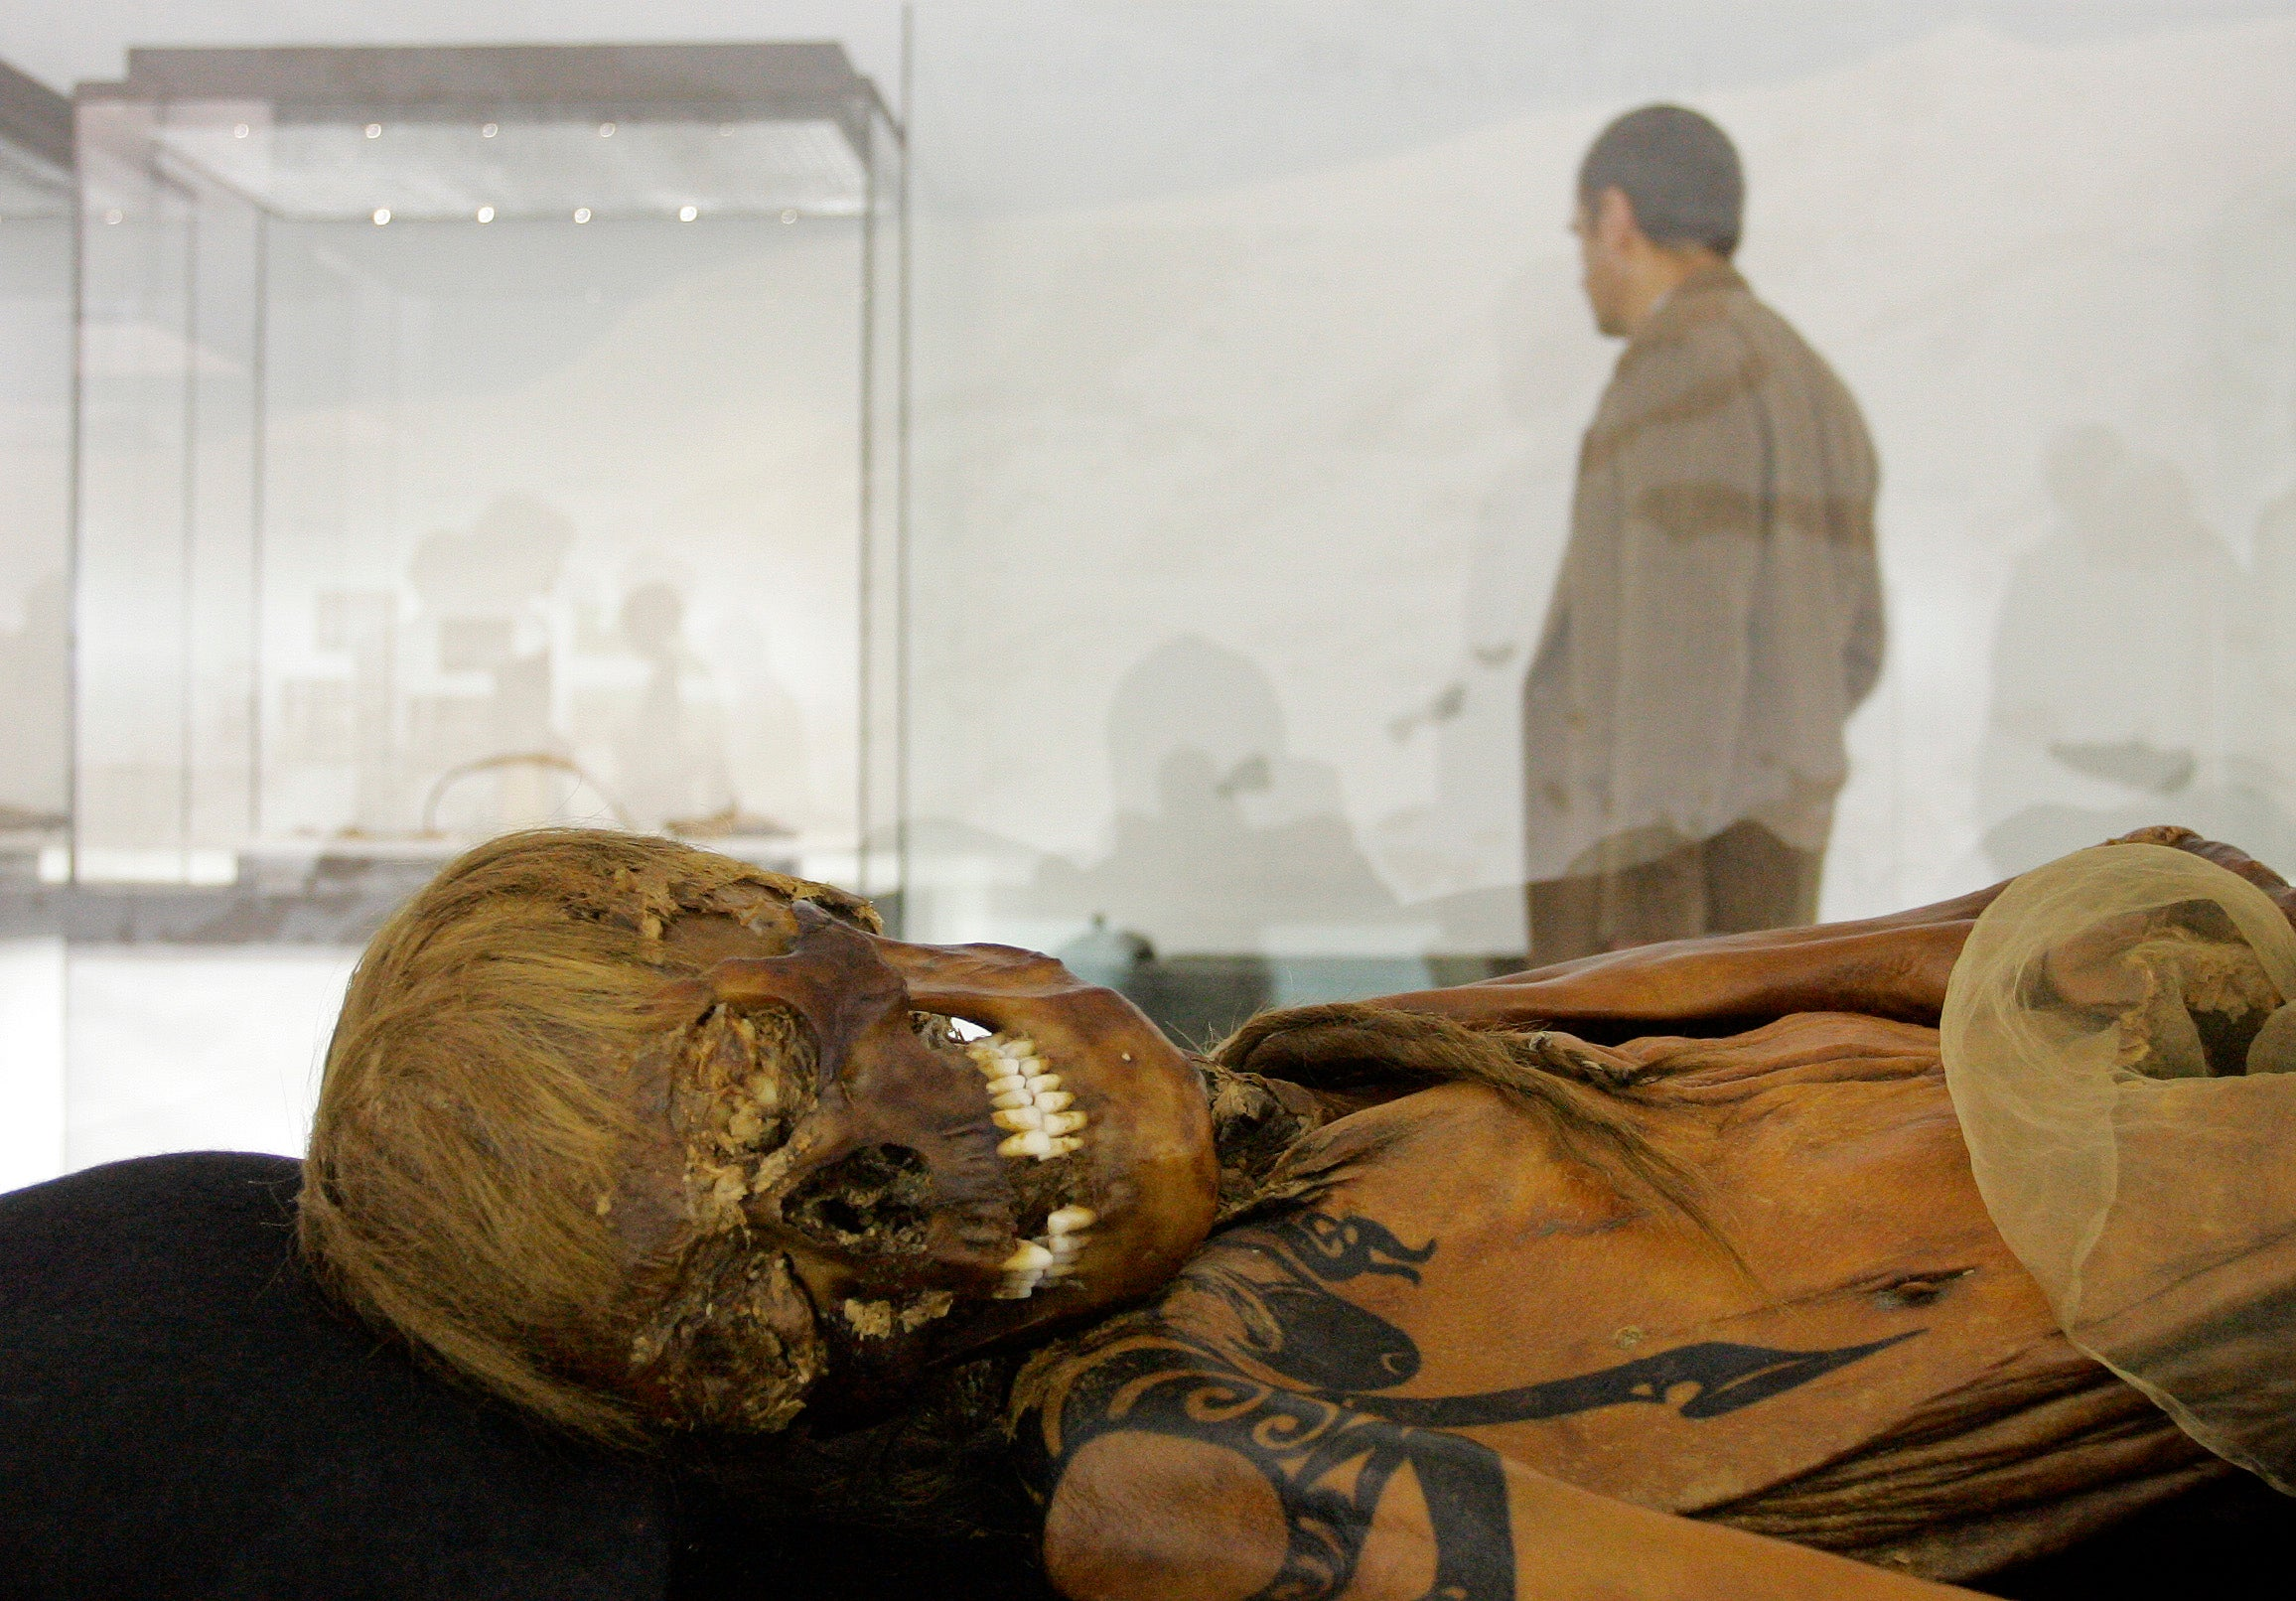 Soviet Bombers and Scythian Mummies: The Archaeology Uncovered By Climate Change